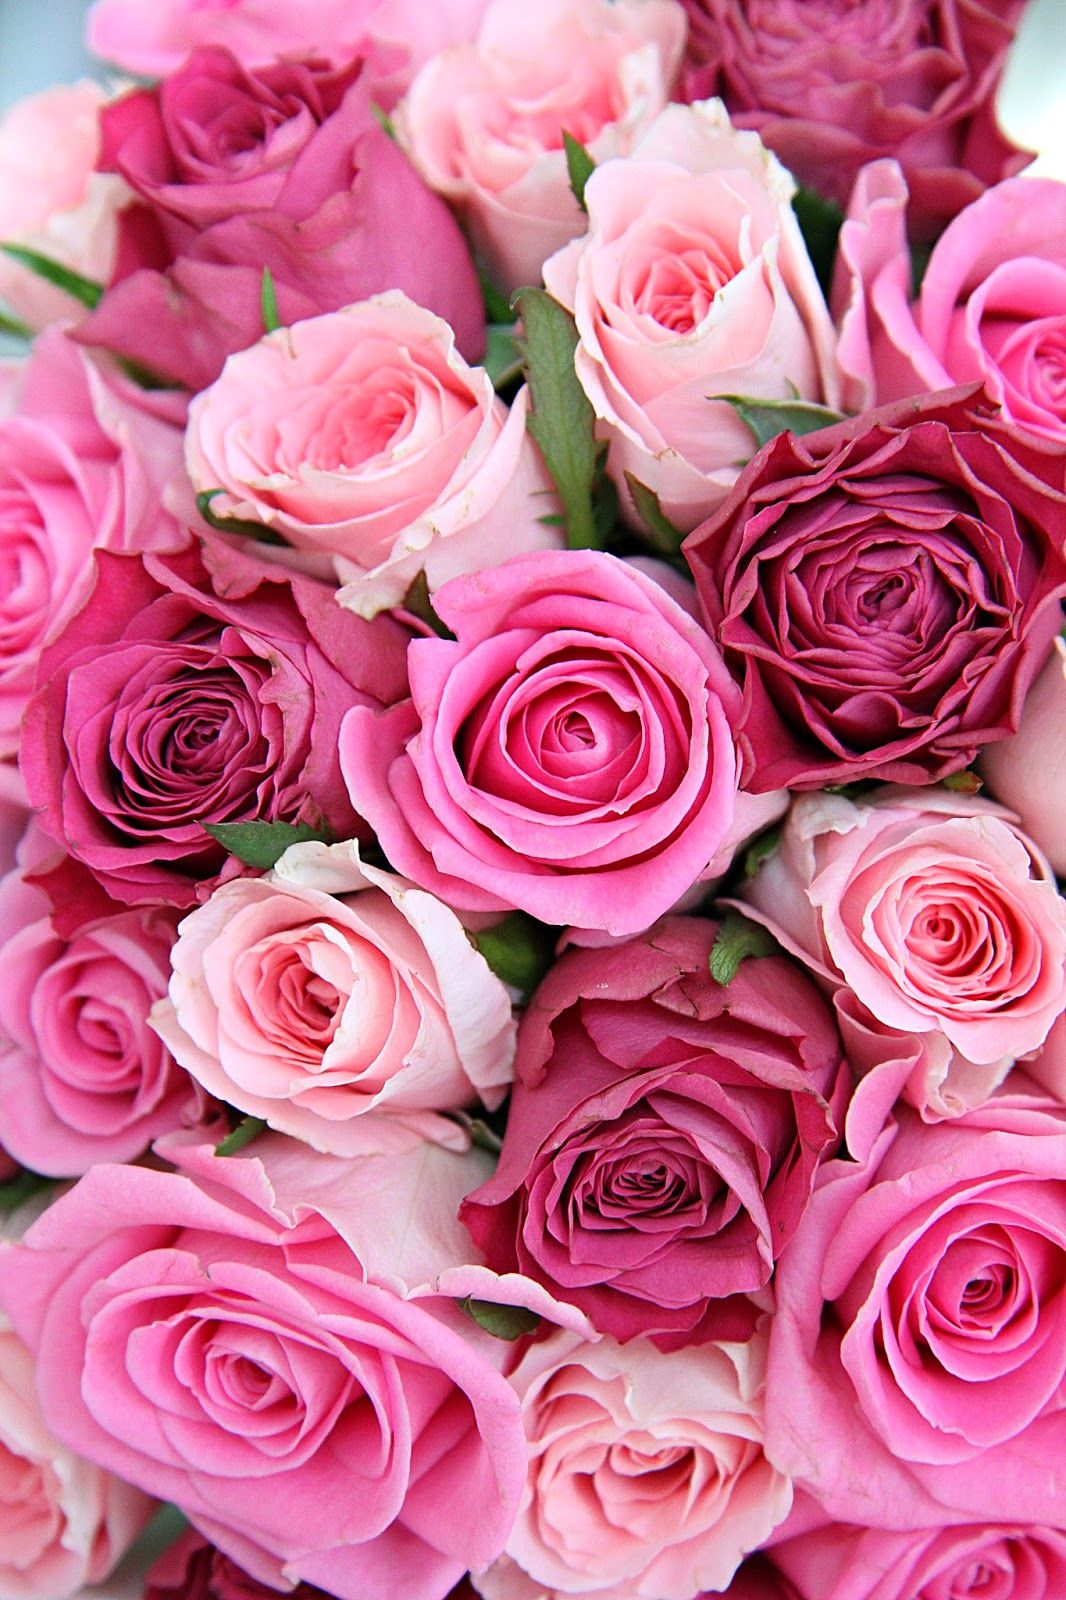 Stjrnor champagne flowers pinterest flowers beautiful stjrnor amp champagne beautiful roses love rose iphone wallpapers pink flowers izmirmasajfo